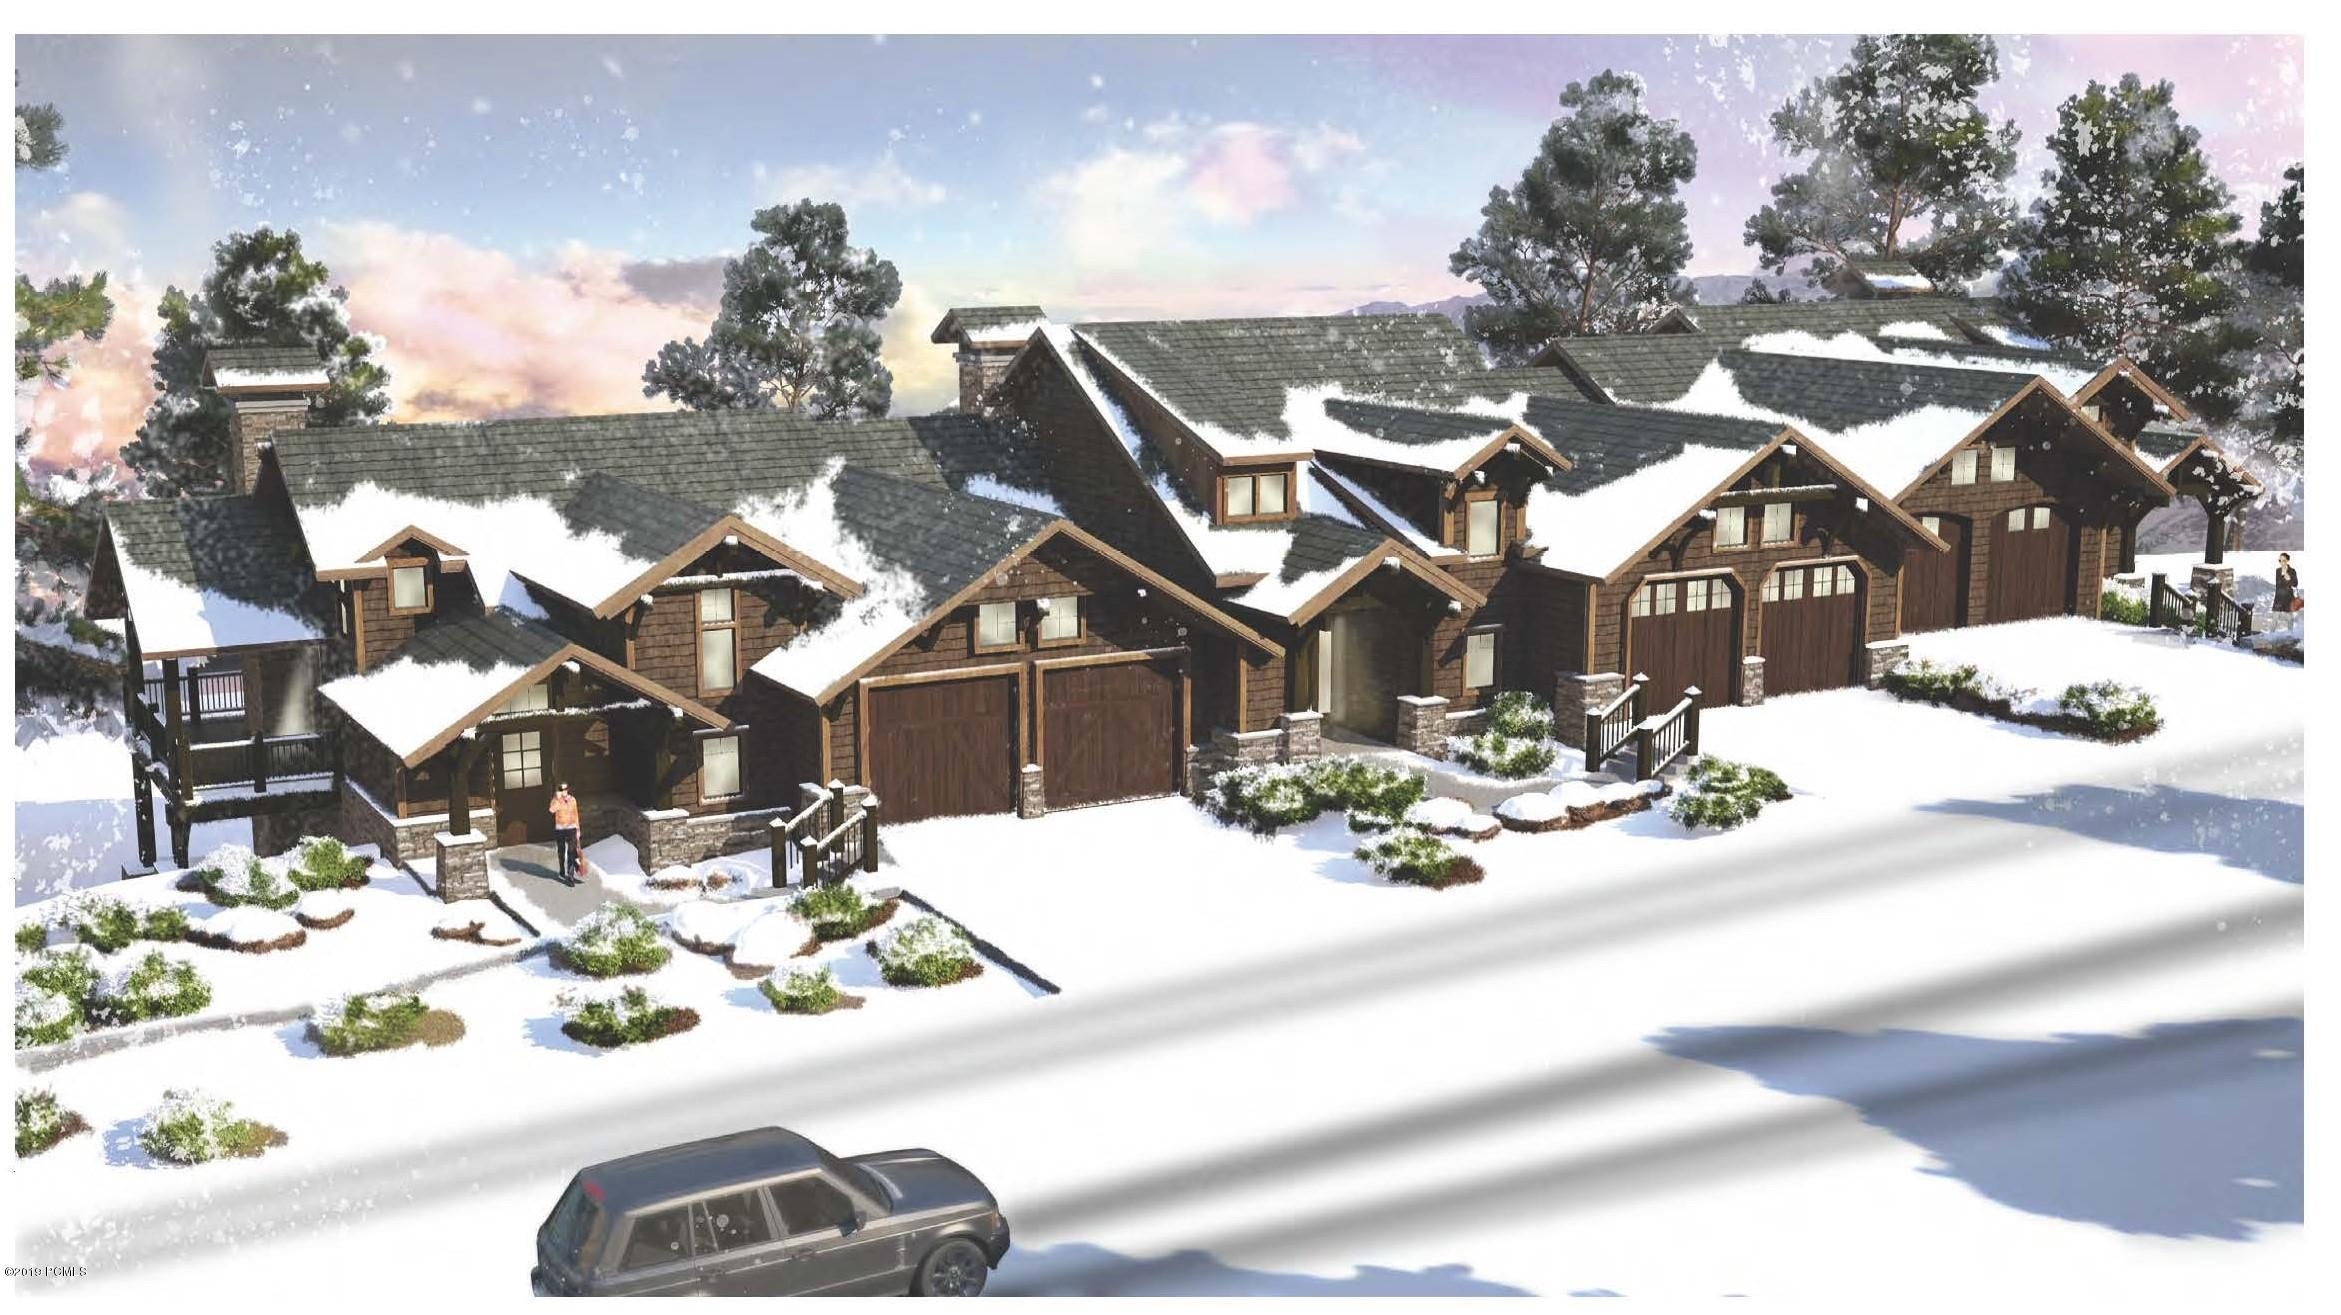 7700 Village Way, Park City, Utah 84060, 4 Bedrooms Bedrooms, ,5 BathroomsBathrooms,Condominium,For Sale,Village,20190109112430415765000000